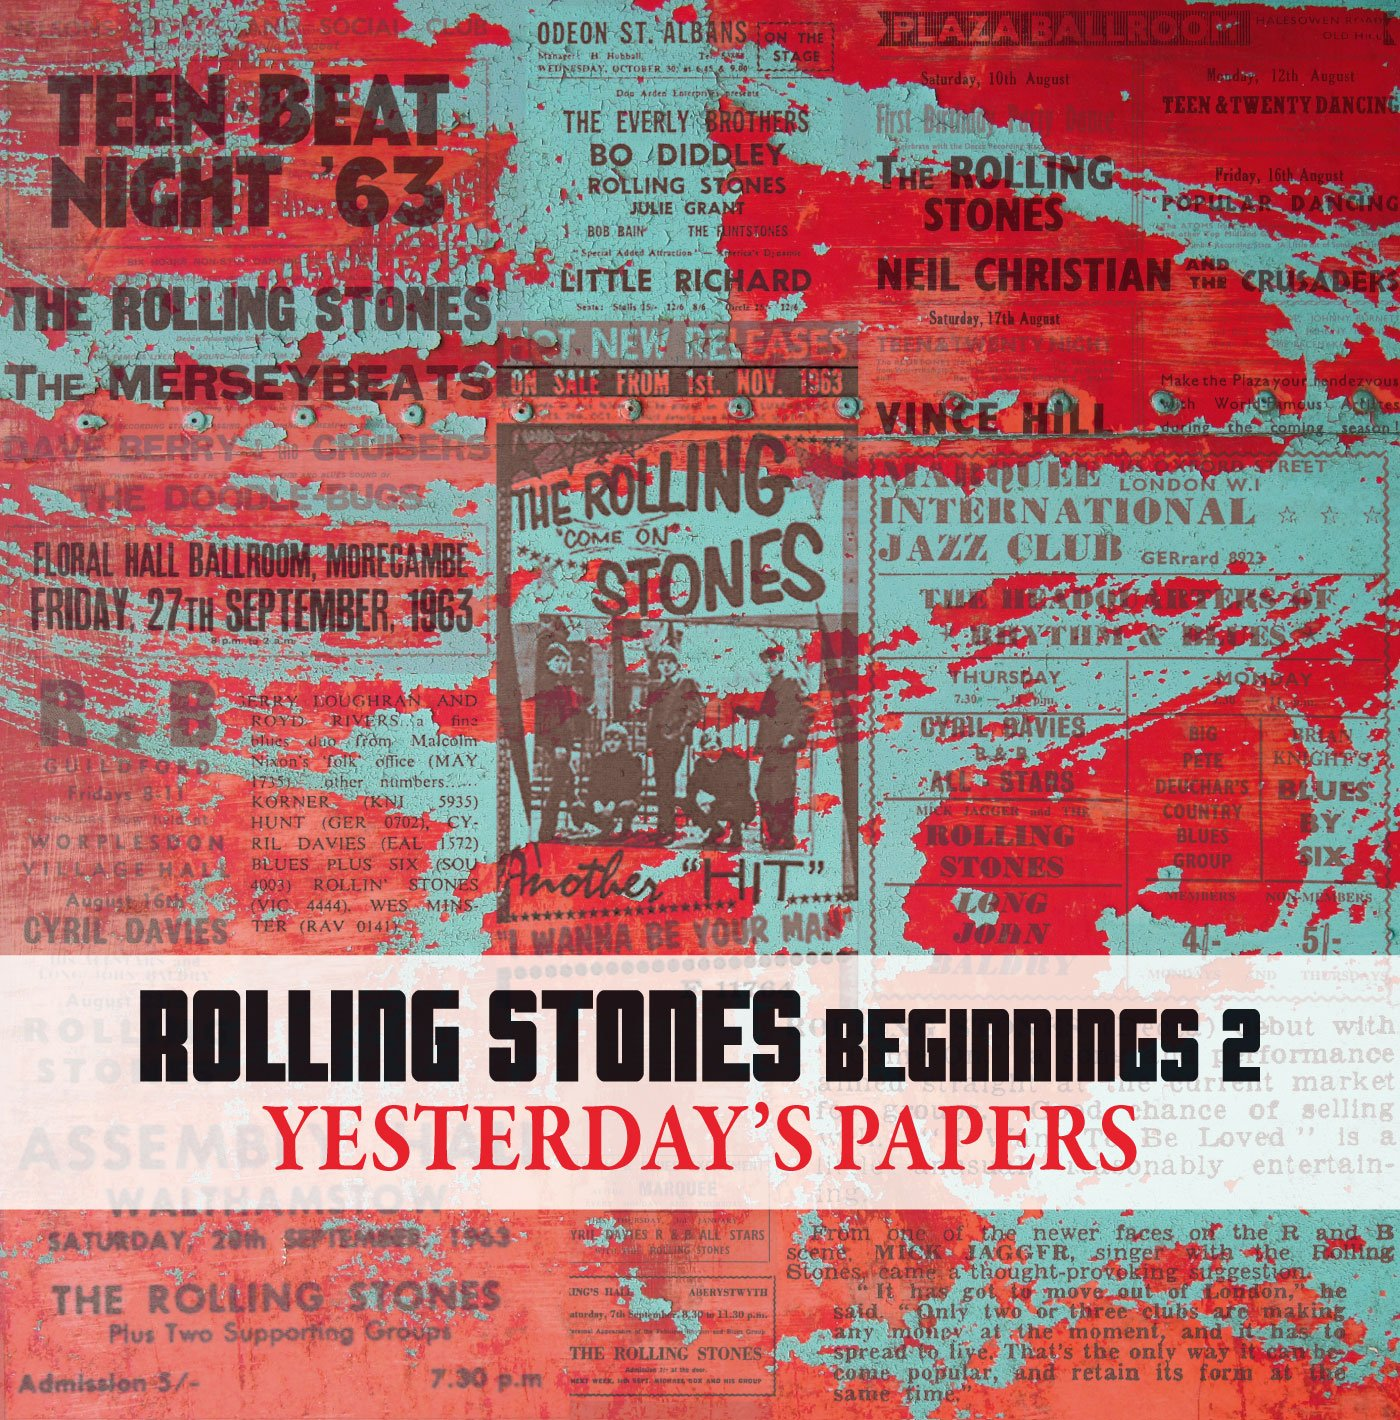 Rolling Stones Beginnings Vol 2